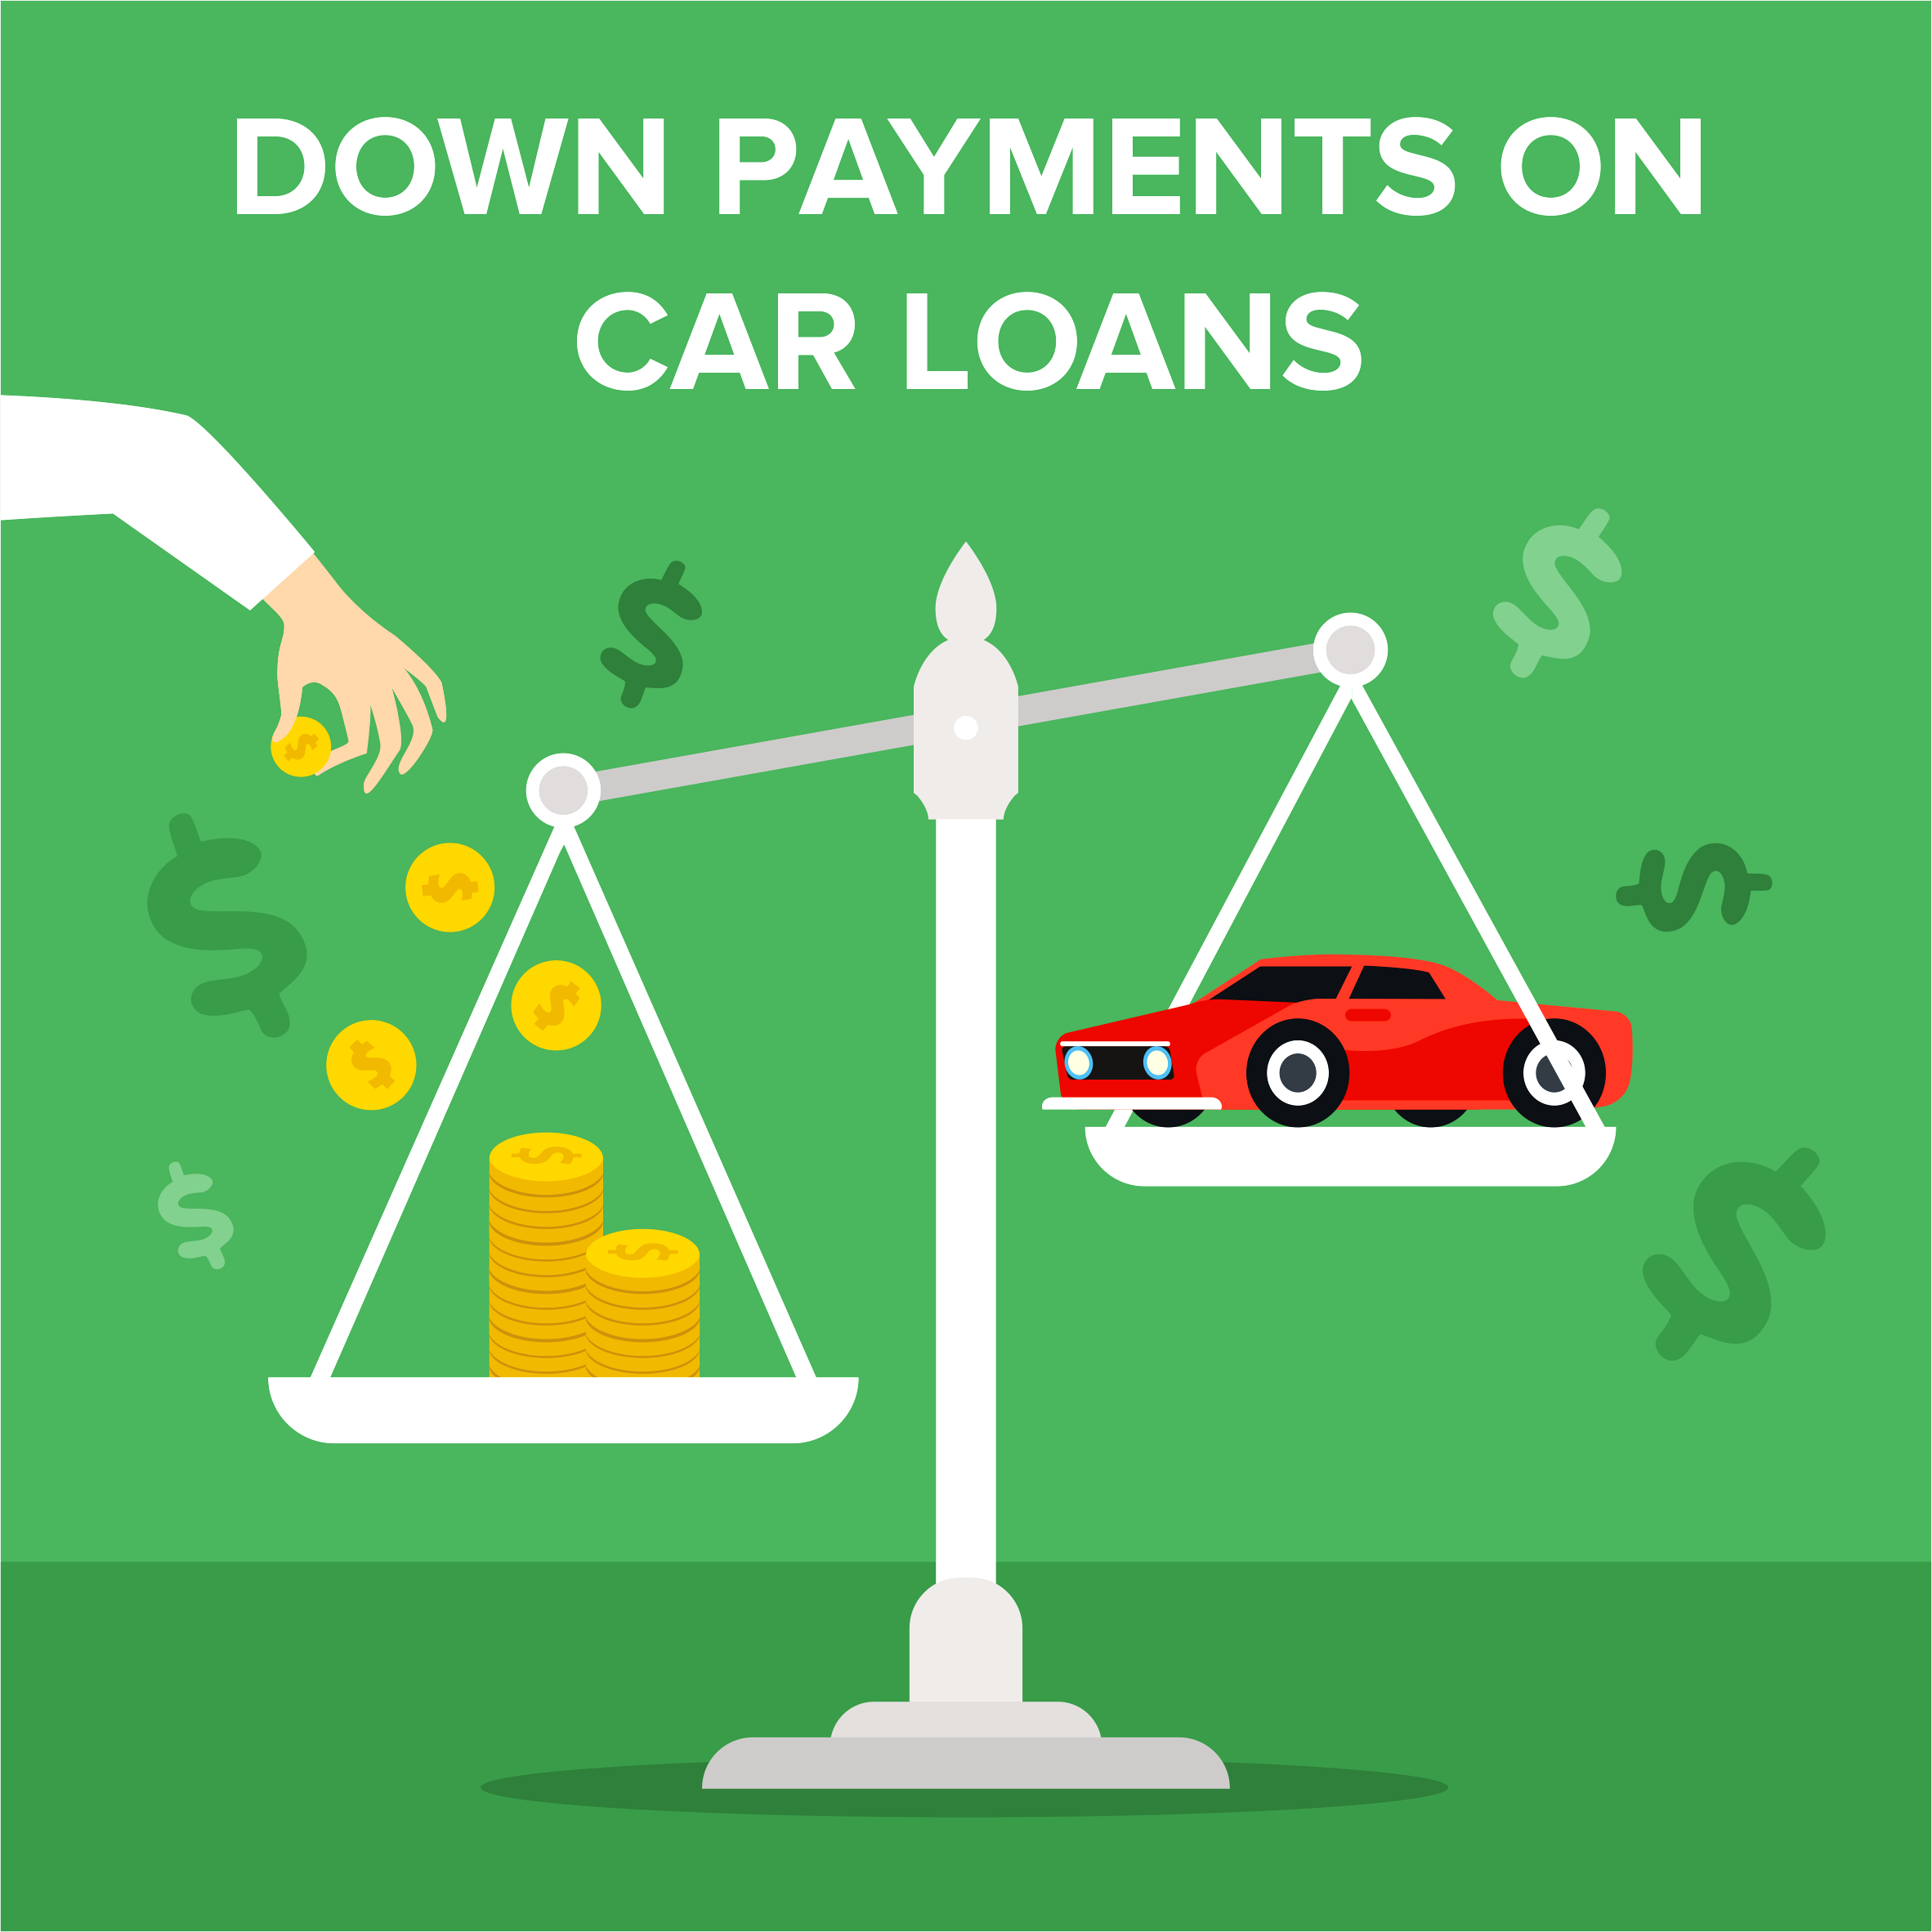 Down Payments on Car Loans